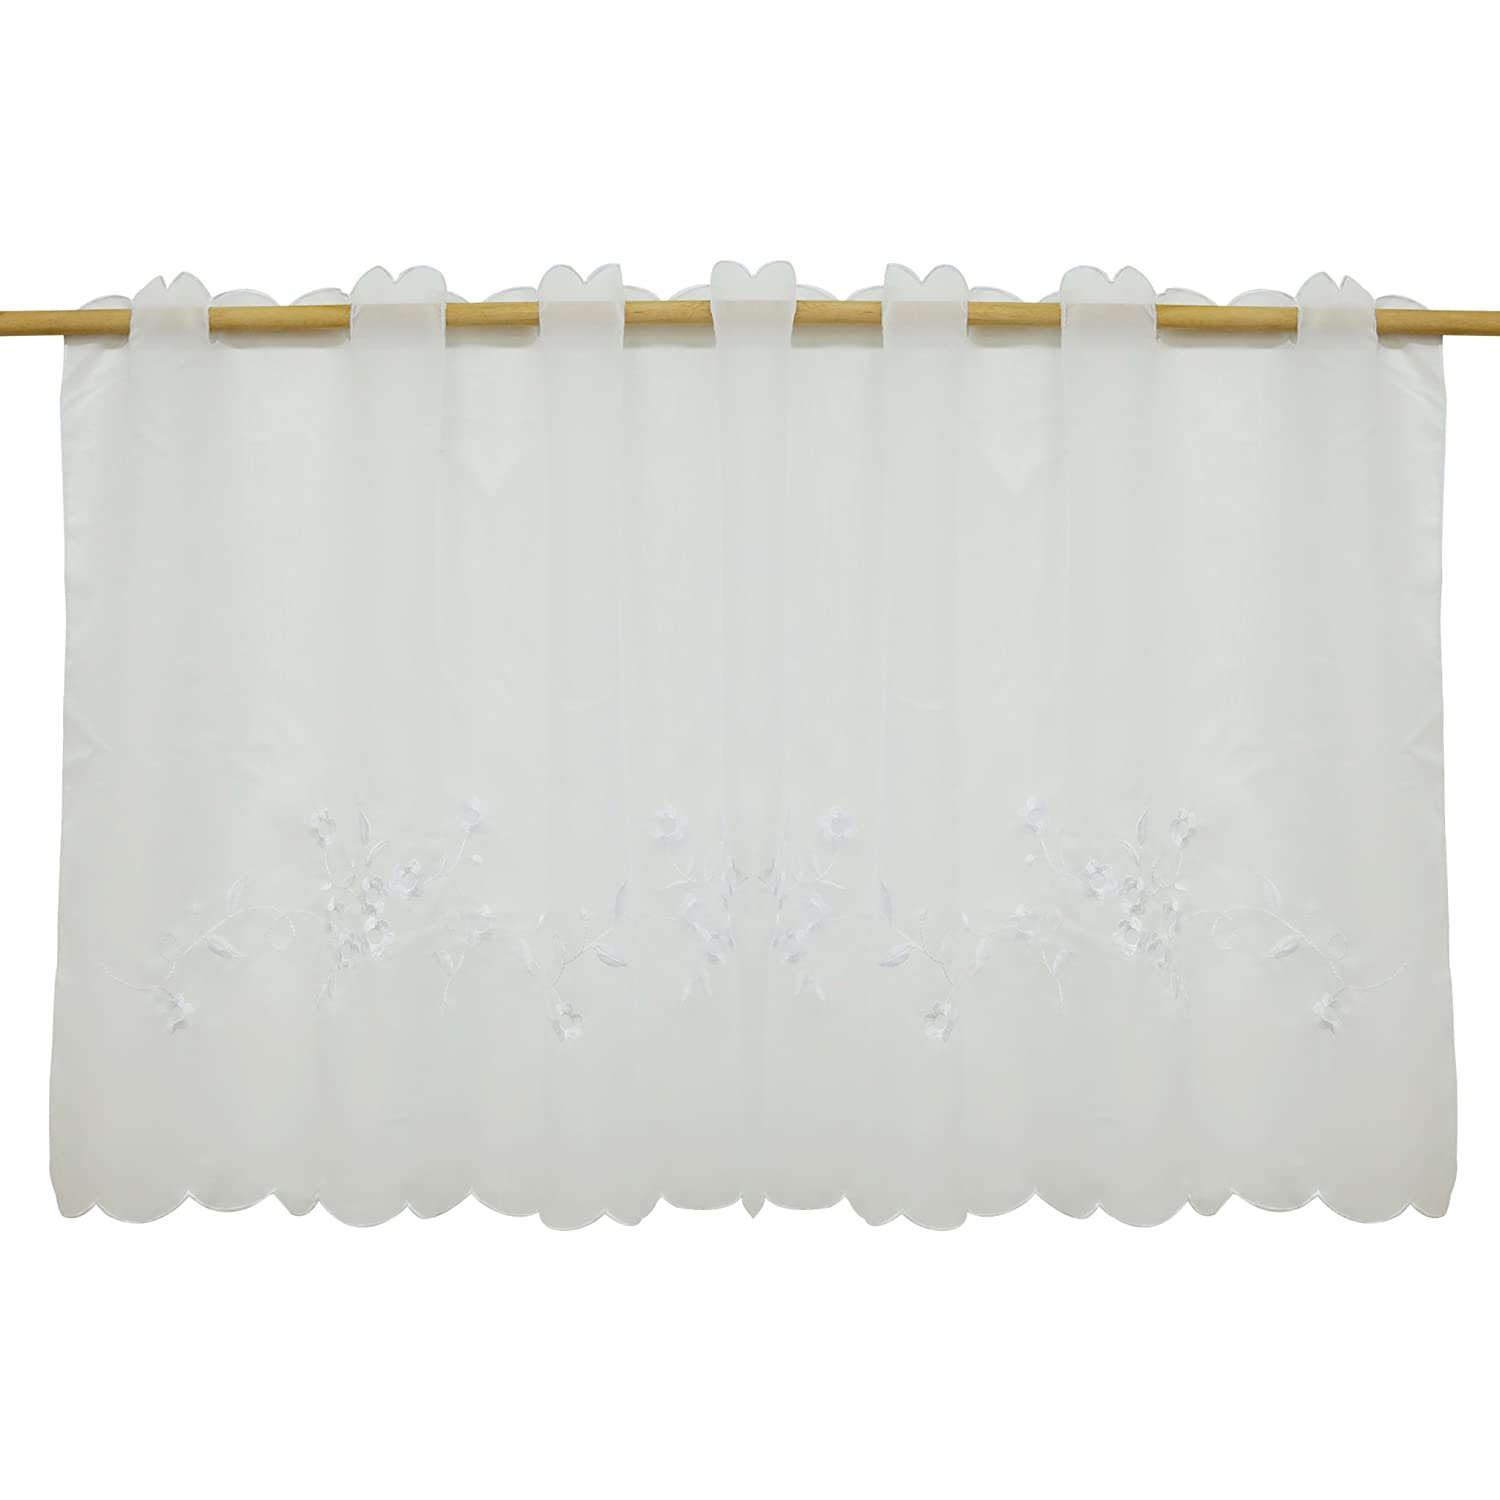 "ISINO 1 Piece Rod Pocket Embroidered Cafe Curtain Sheer Voile Kitchen Tier Curtain W 55"" x H 23"" White"